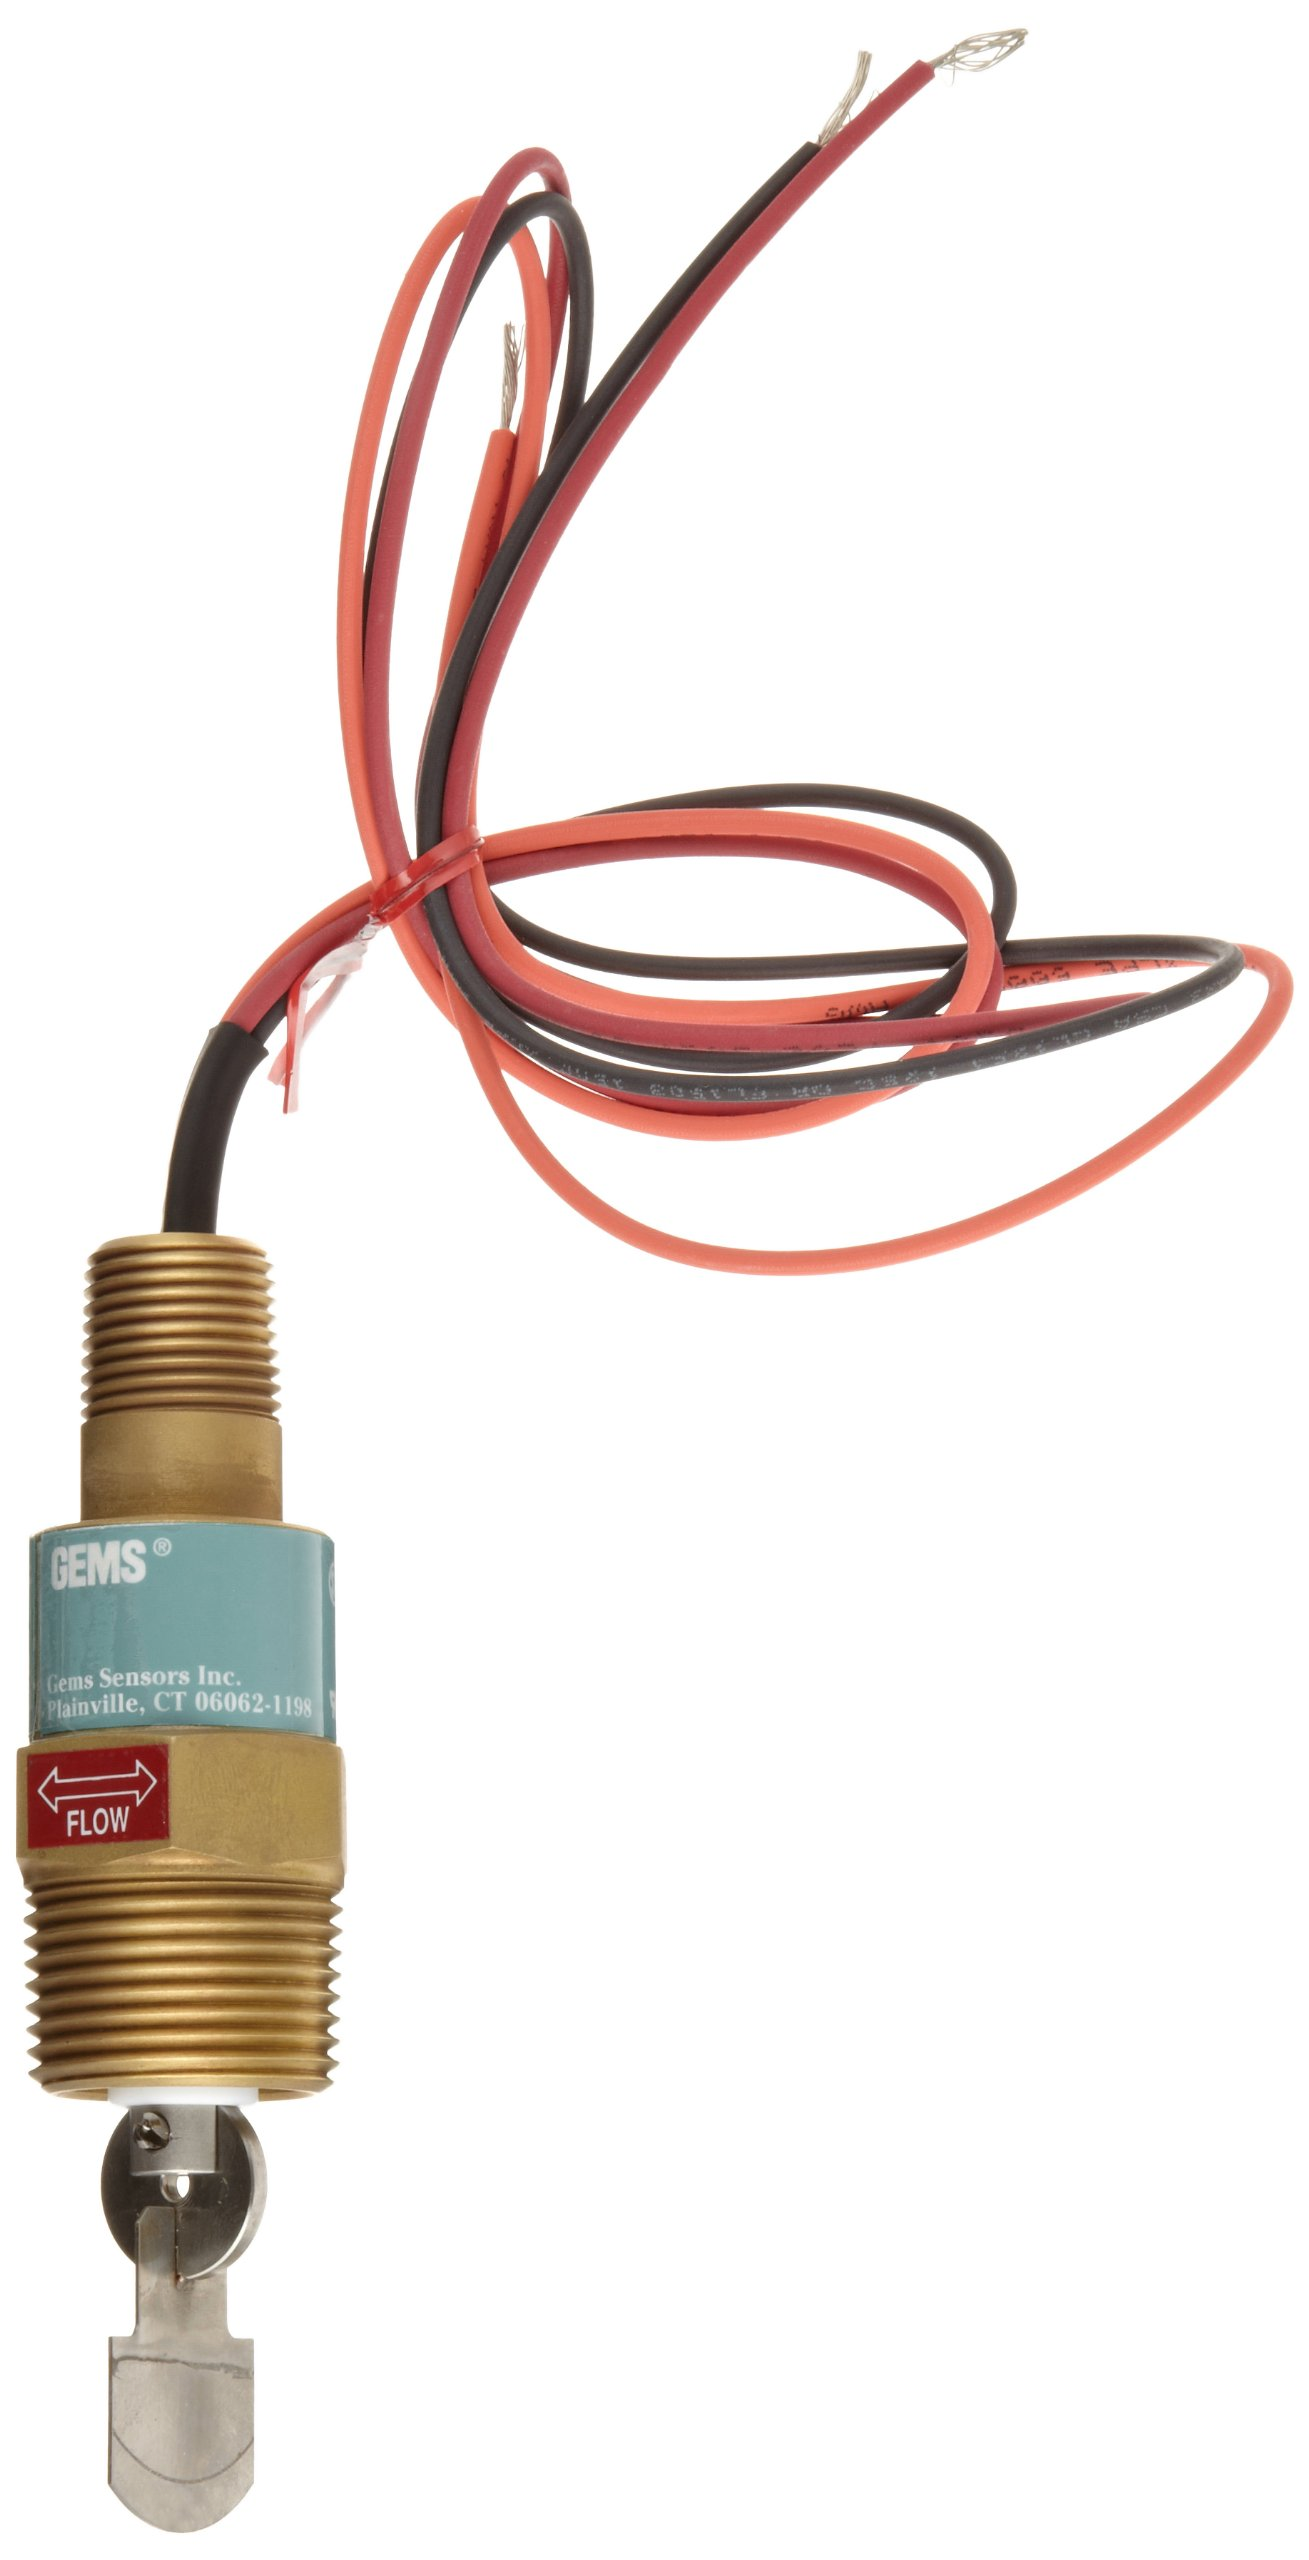 Gems Sensors FS-550 Series Brass High Pressure Flow Switch, Paddle Type, 15.0 - 52.0 gpm Flow Setting Adjustment Range, 1'' NPT Male